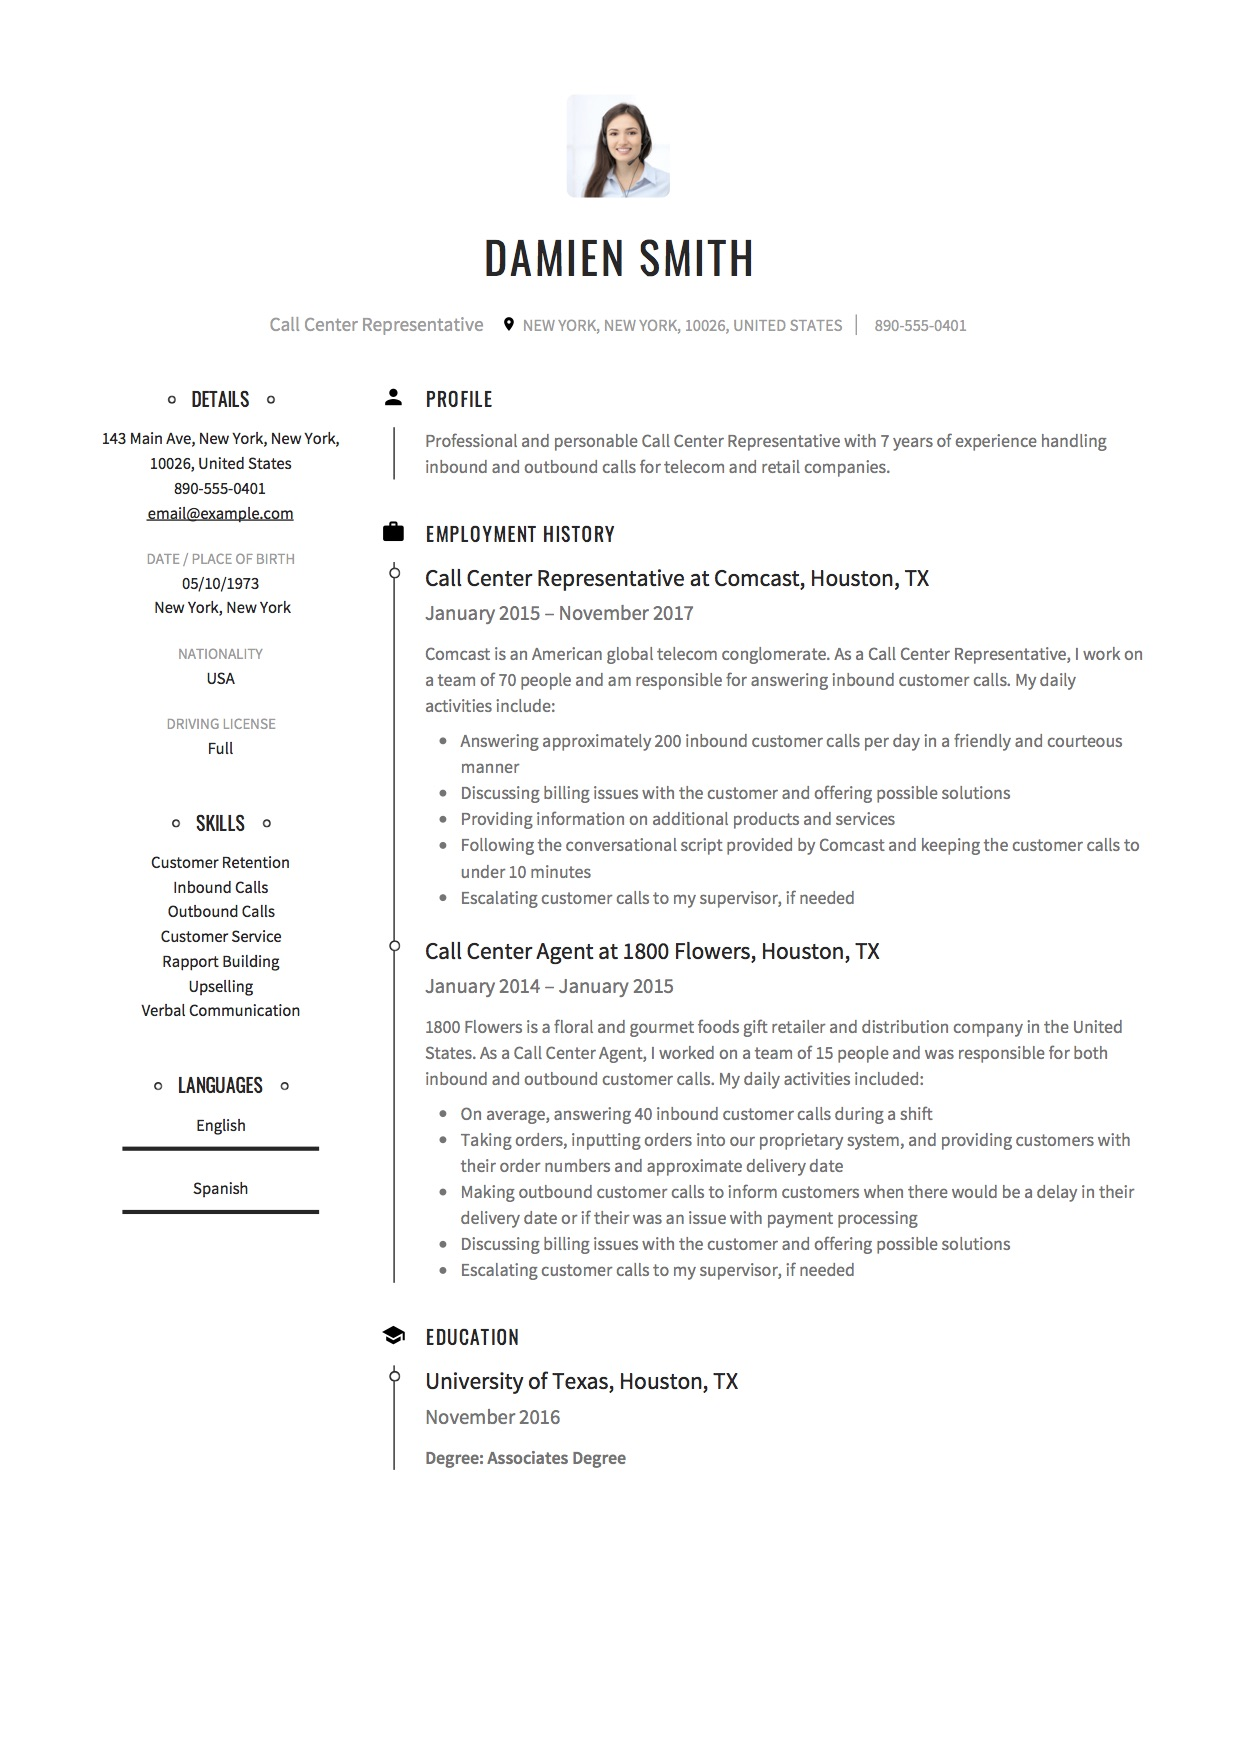 Call Center Resume Guide 12 Free Downloads 2020